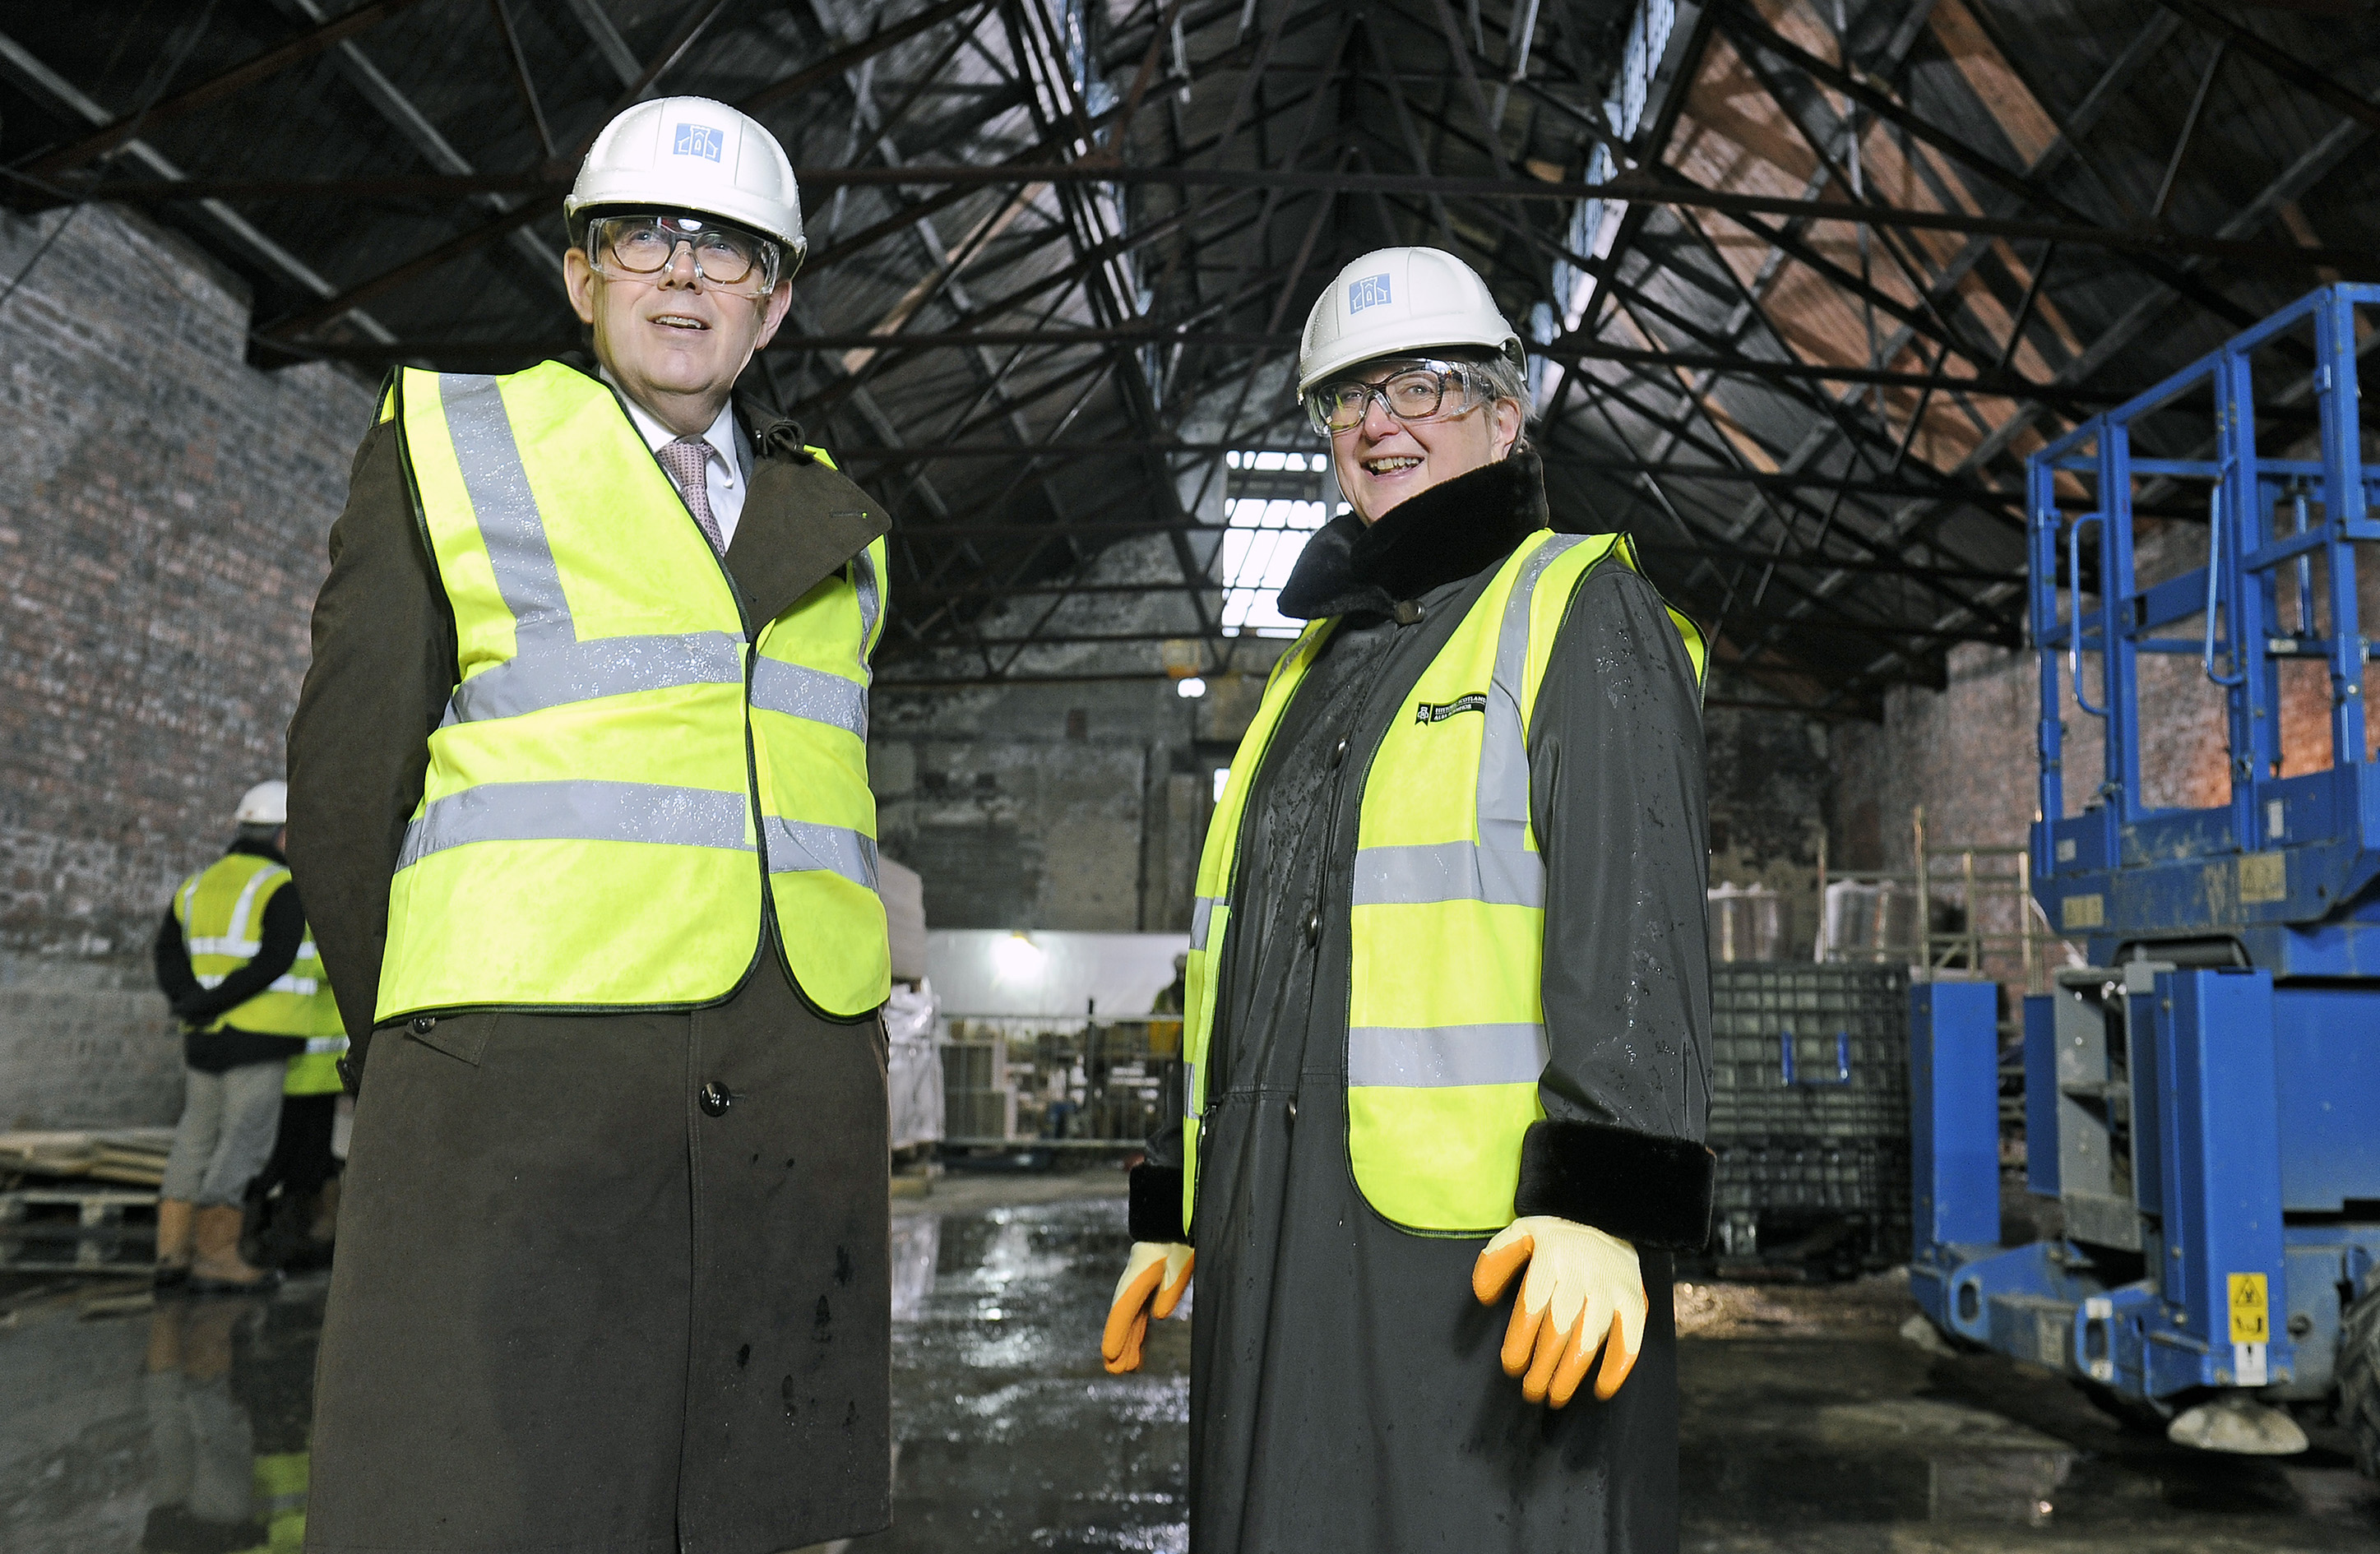 Sir Peter Luff, Chair of National Heritage Memorial Fund and Heritage Lottery Fund and Jane Ryder, Chair Historic Environment Scotland (HES)